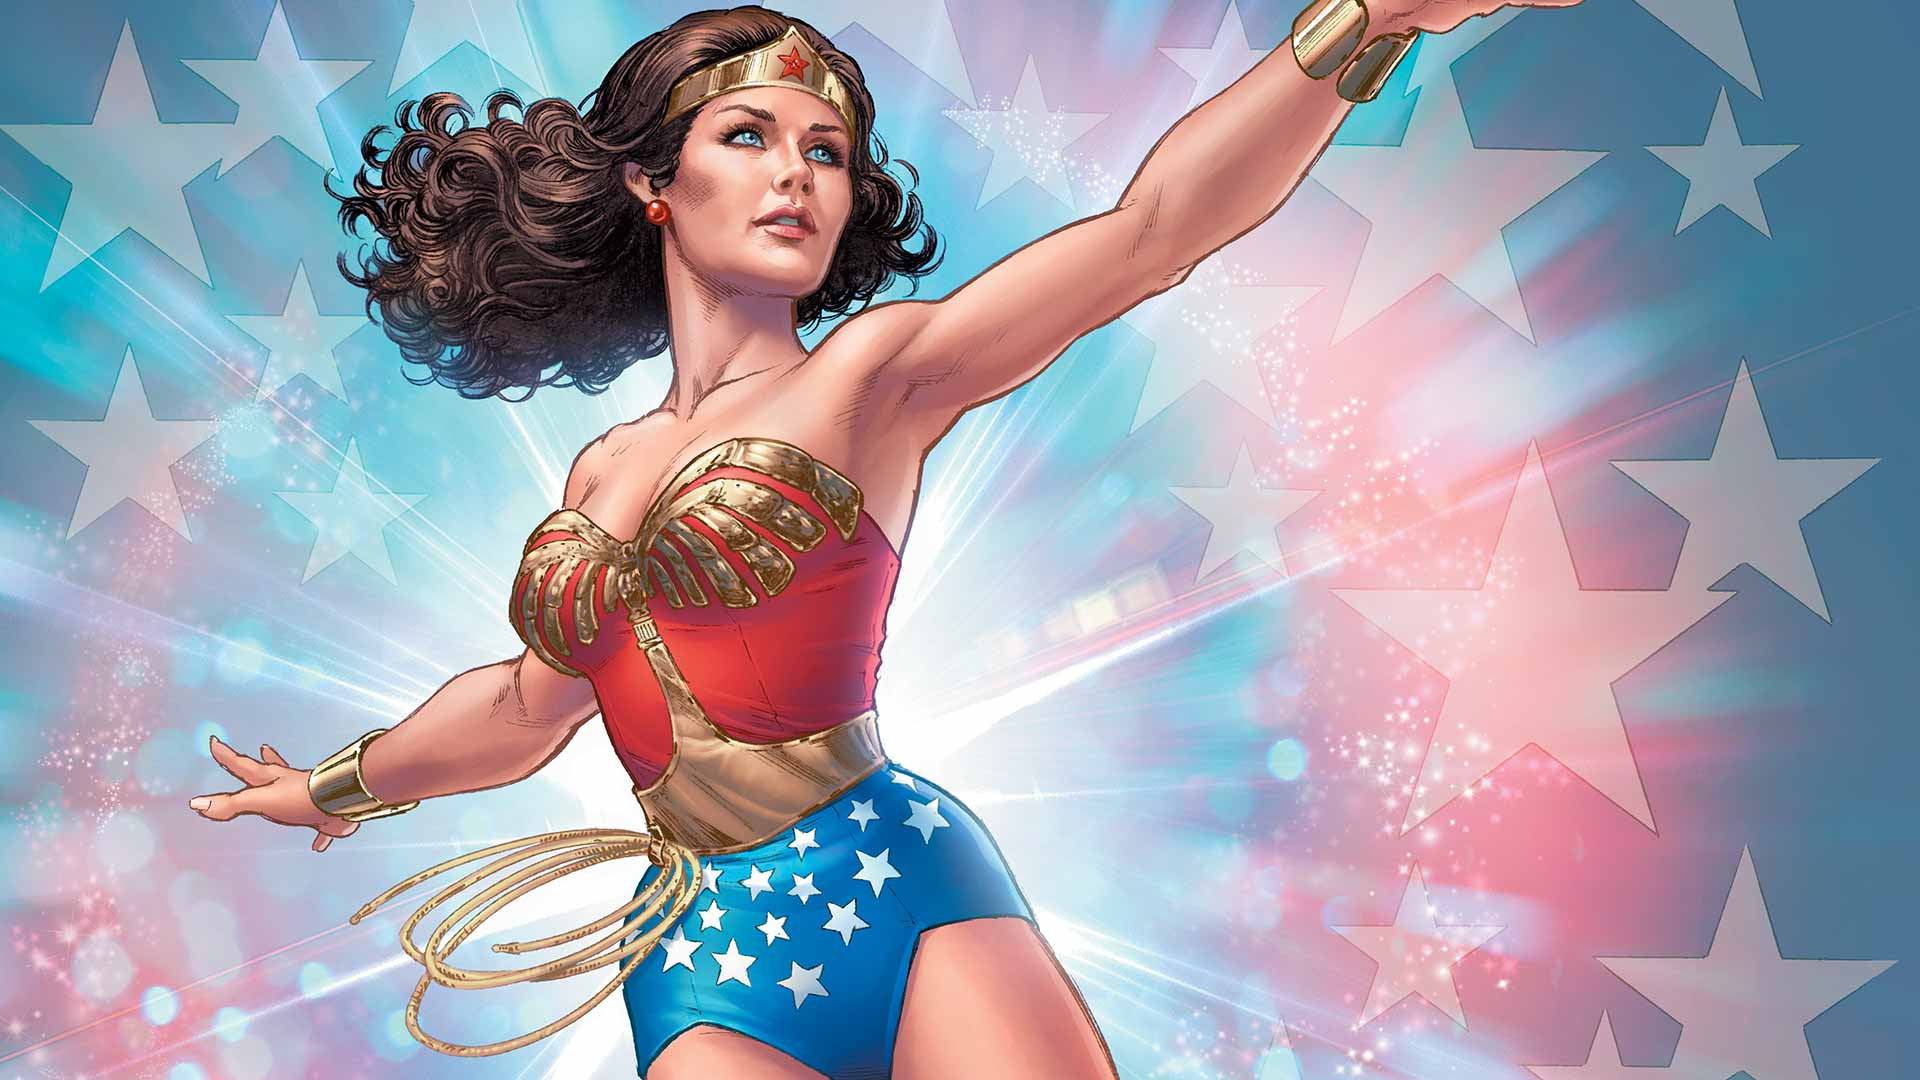 GalleryComics_1920x1080_20150429_WonderWoman2777_CMYK-new-neck-v2_552849f55810a9.84883346